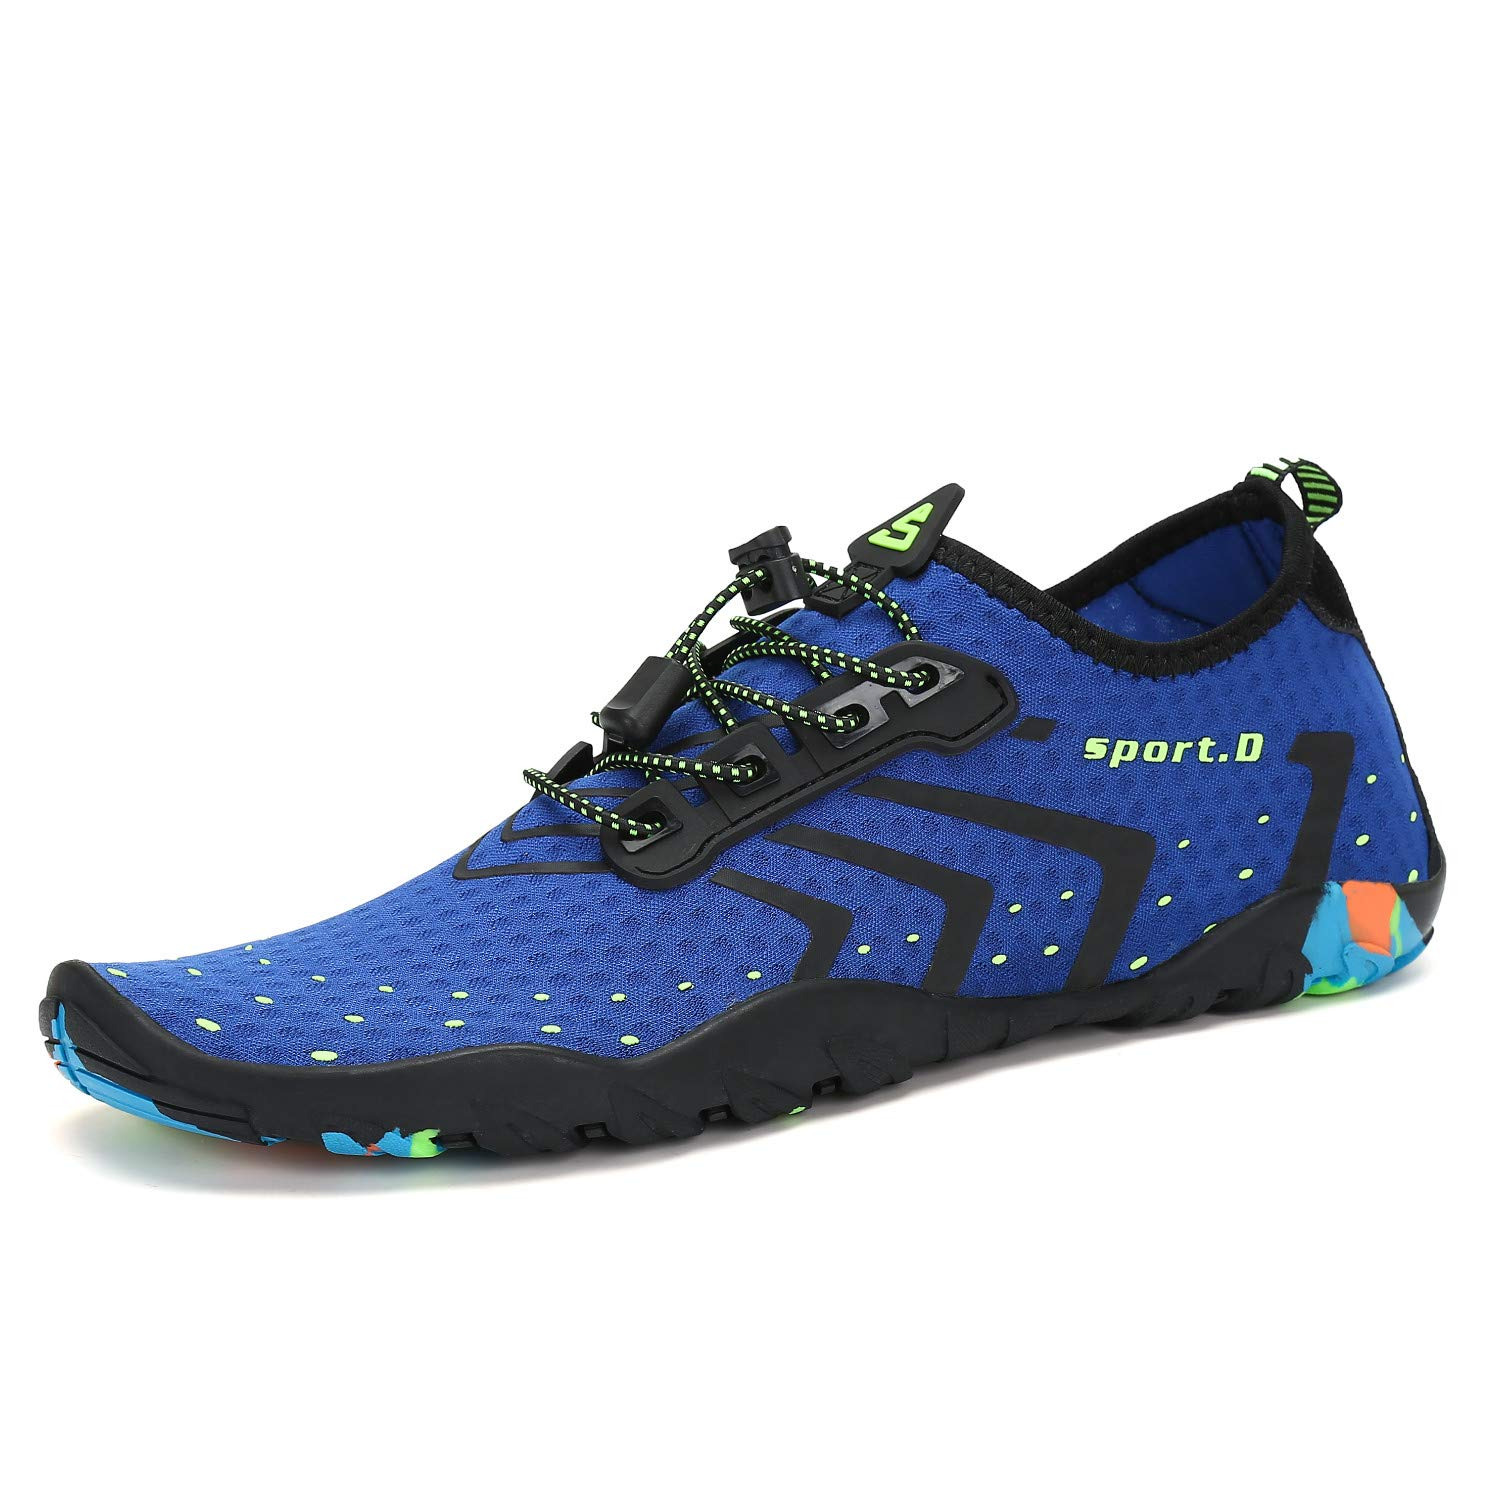 Seabone Unisex Barefoot Outdoor Quick-Dry Water Shoes Womens Mens for Aqua Beach Vacation Swim Diving Surf Yoga